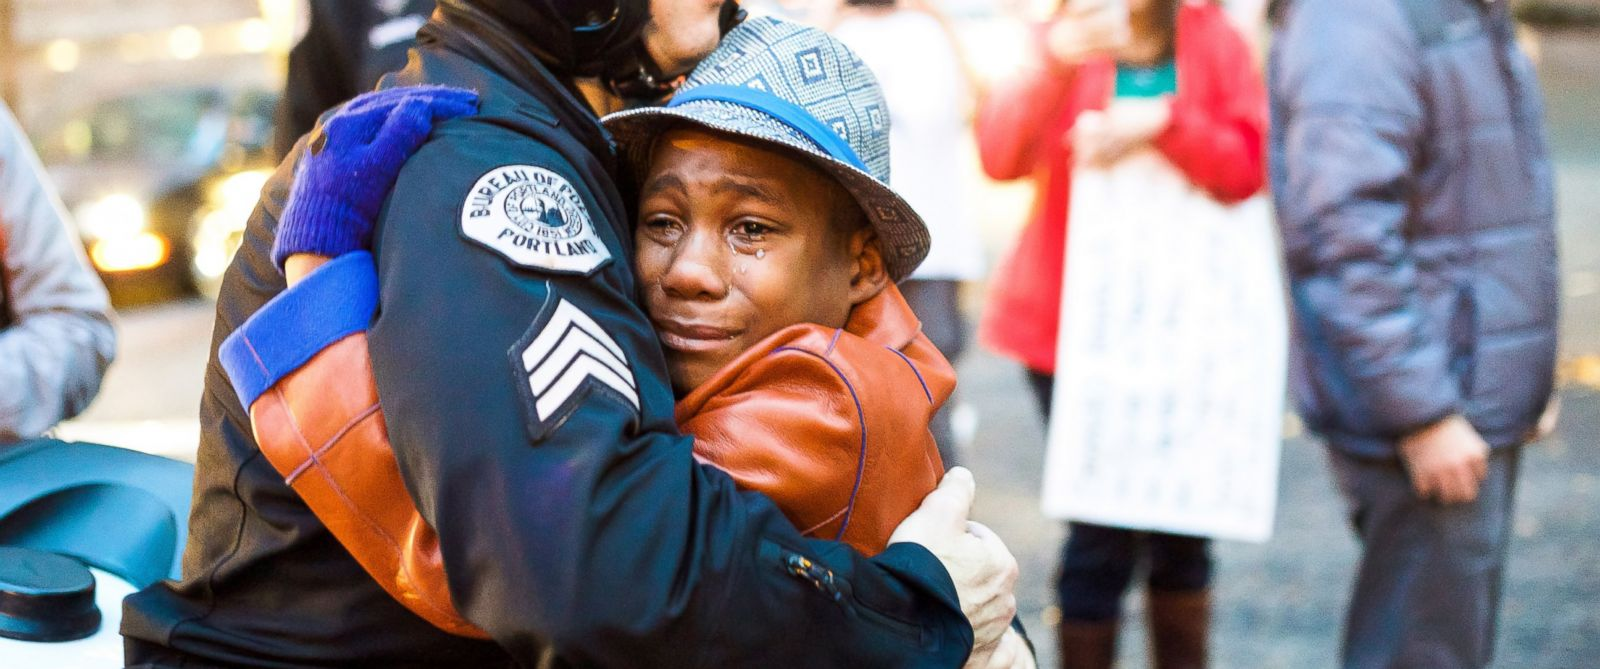 PHOTO: Police Sgt. Bret Barnum hugs 12-year-old Devonte Hart during a demonstration in Portland, Ore. calling for police reform after the Ferguson grand jury decision on Nov. 25, 2014.